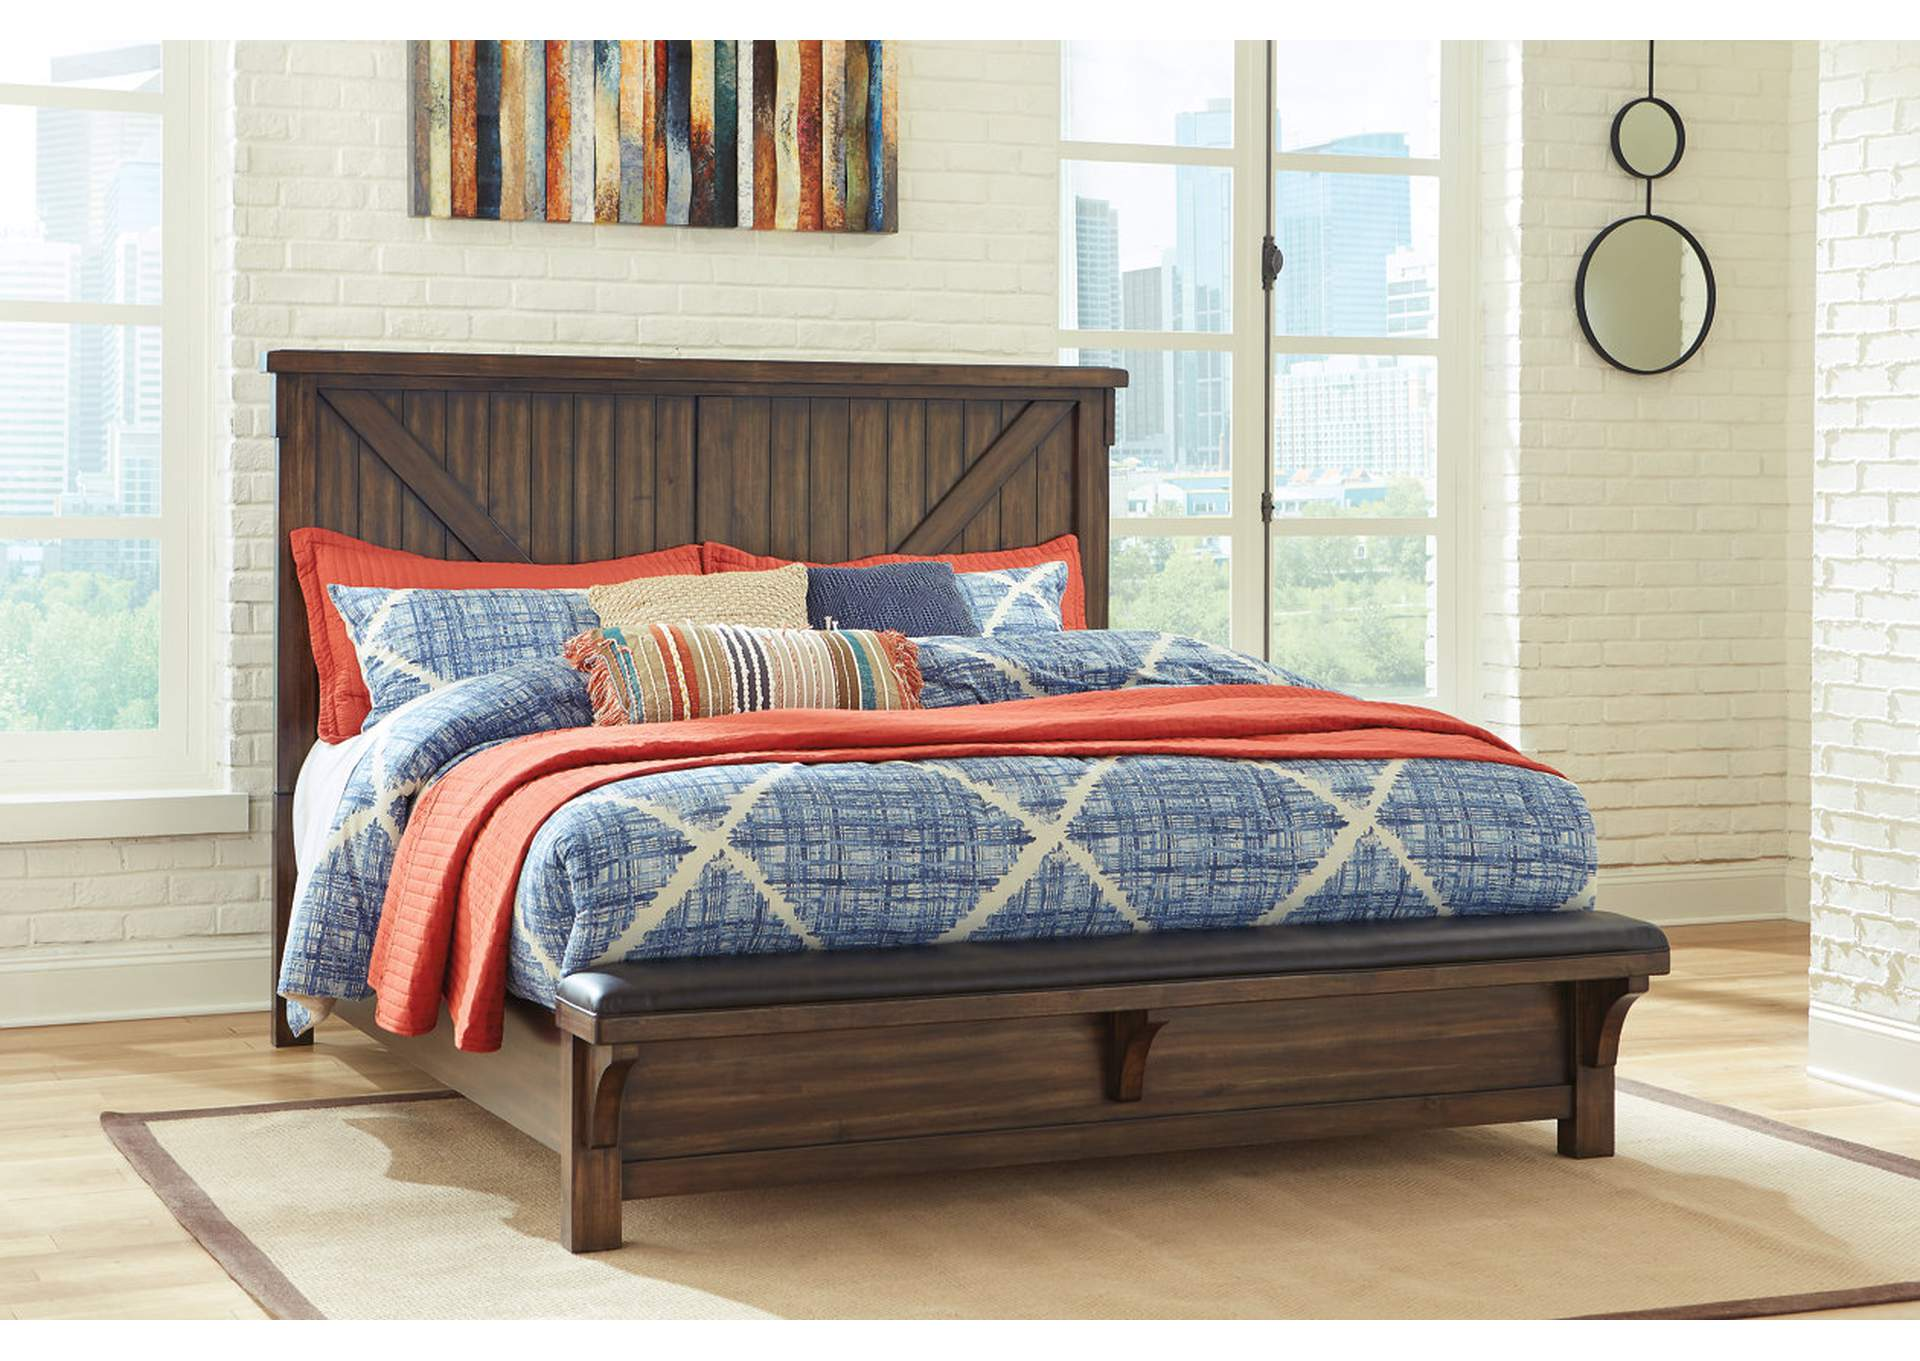 Lakeleigh Brown Queen Bed w/Bench Footboard,Signature Design By Ashley